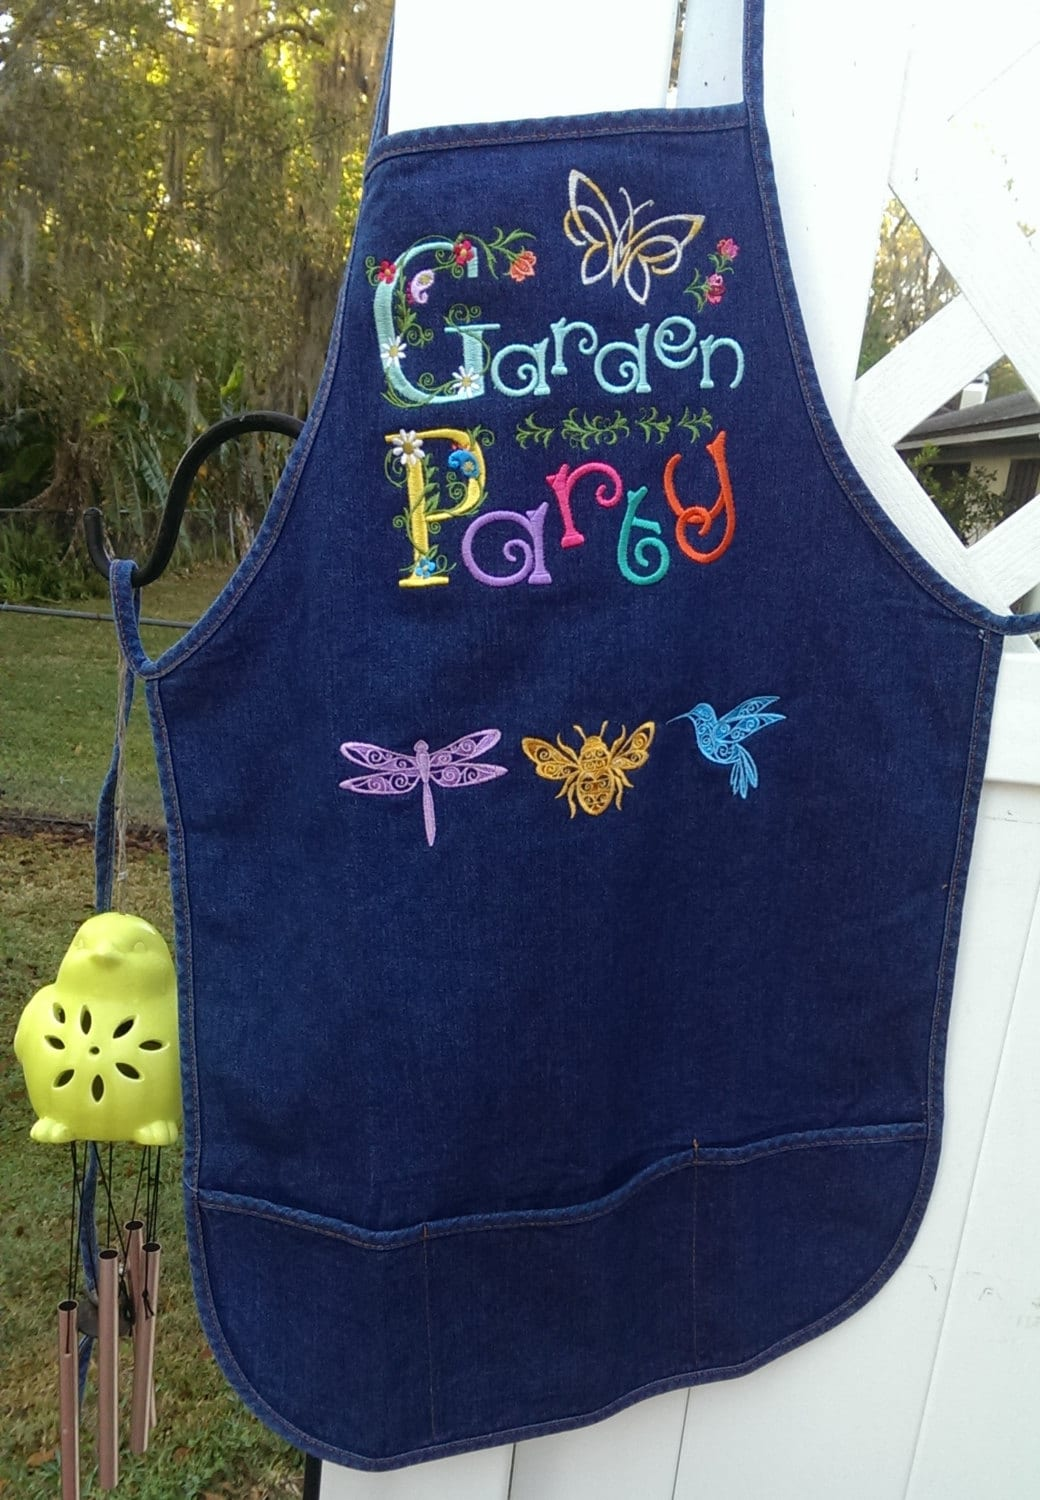 garden party bib apron full aprons 3 pocket apron denim